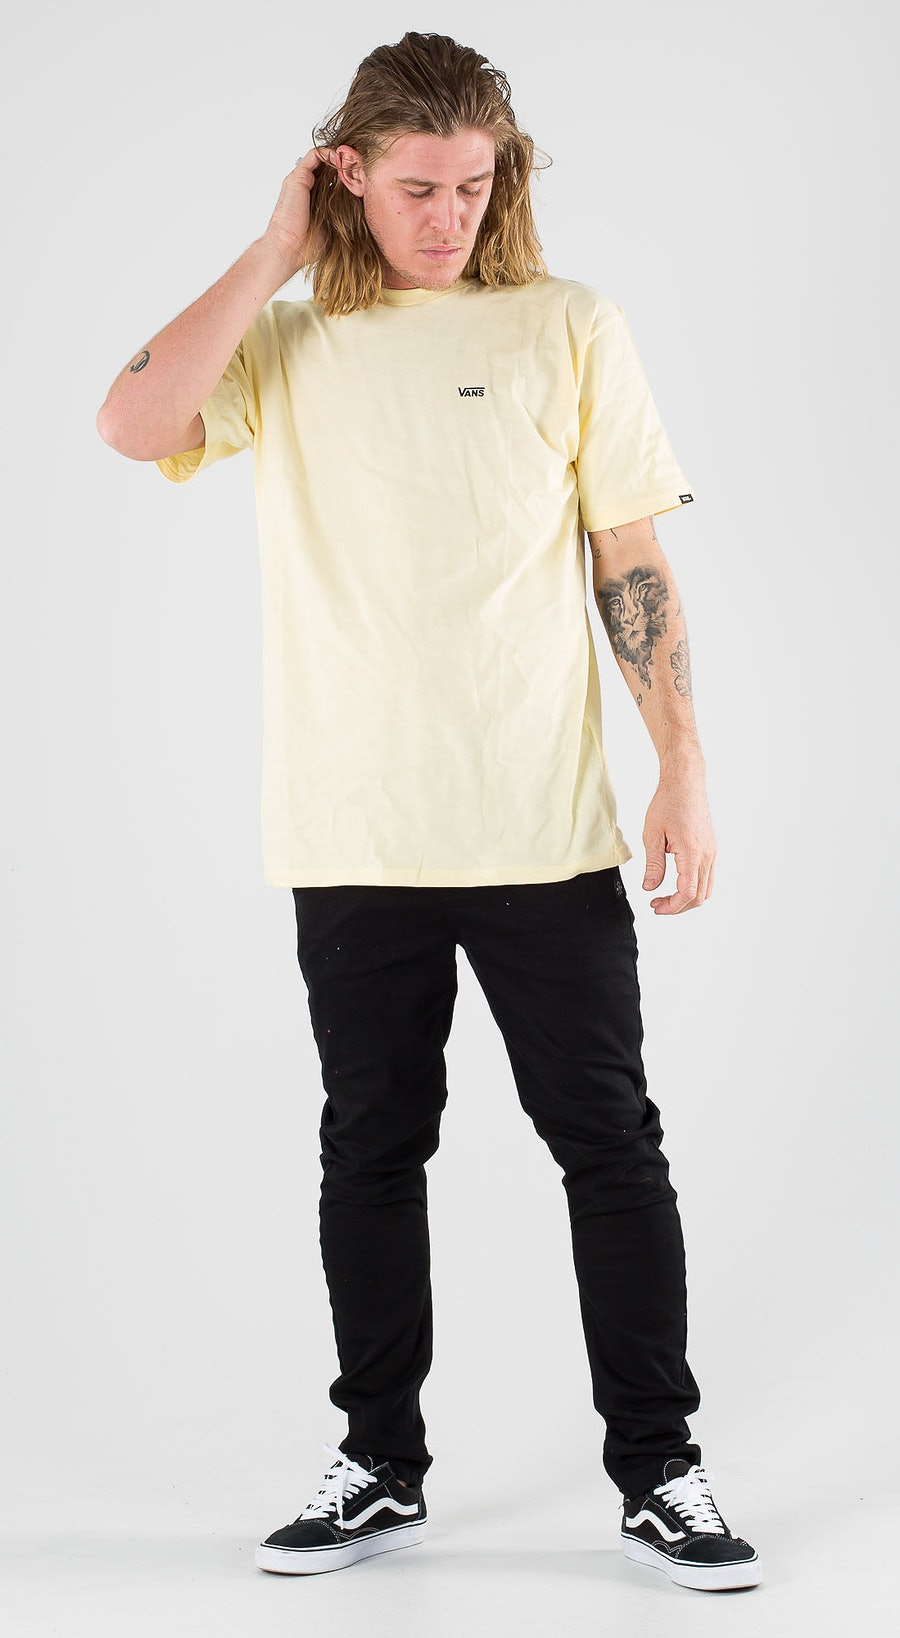 Vans Left Chest Logo Tee Double Cream Black Outfit Multi